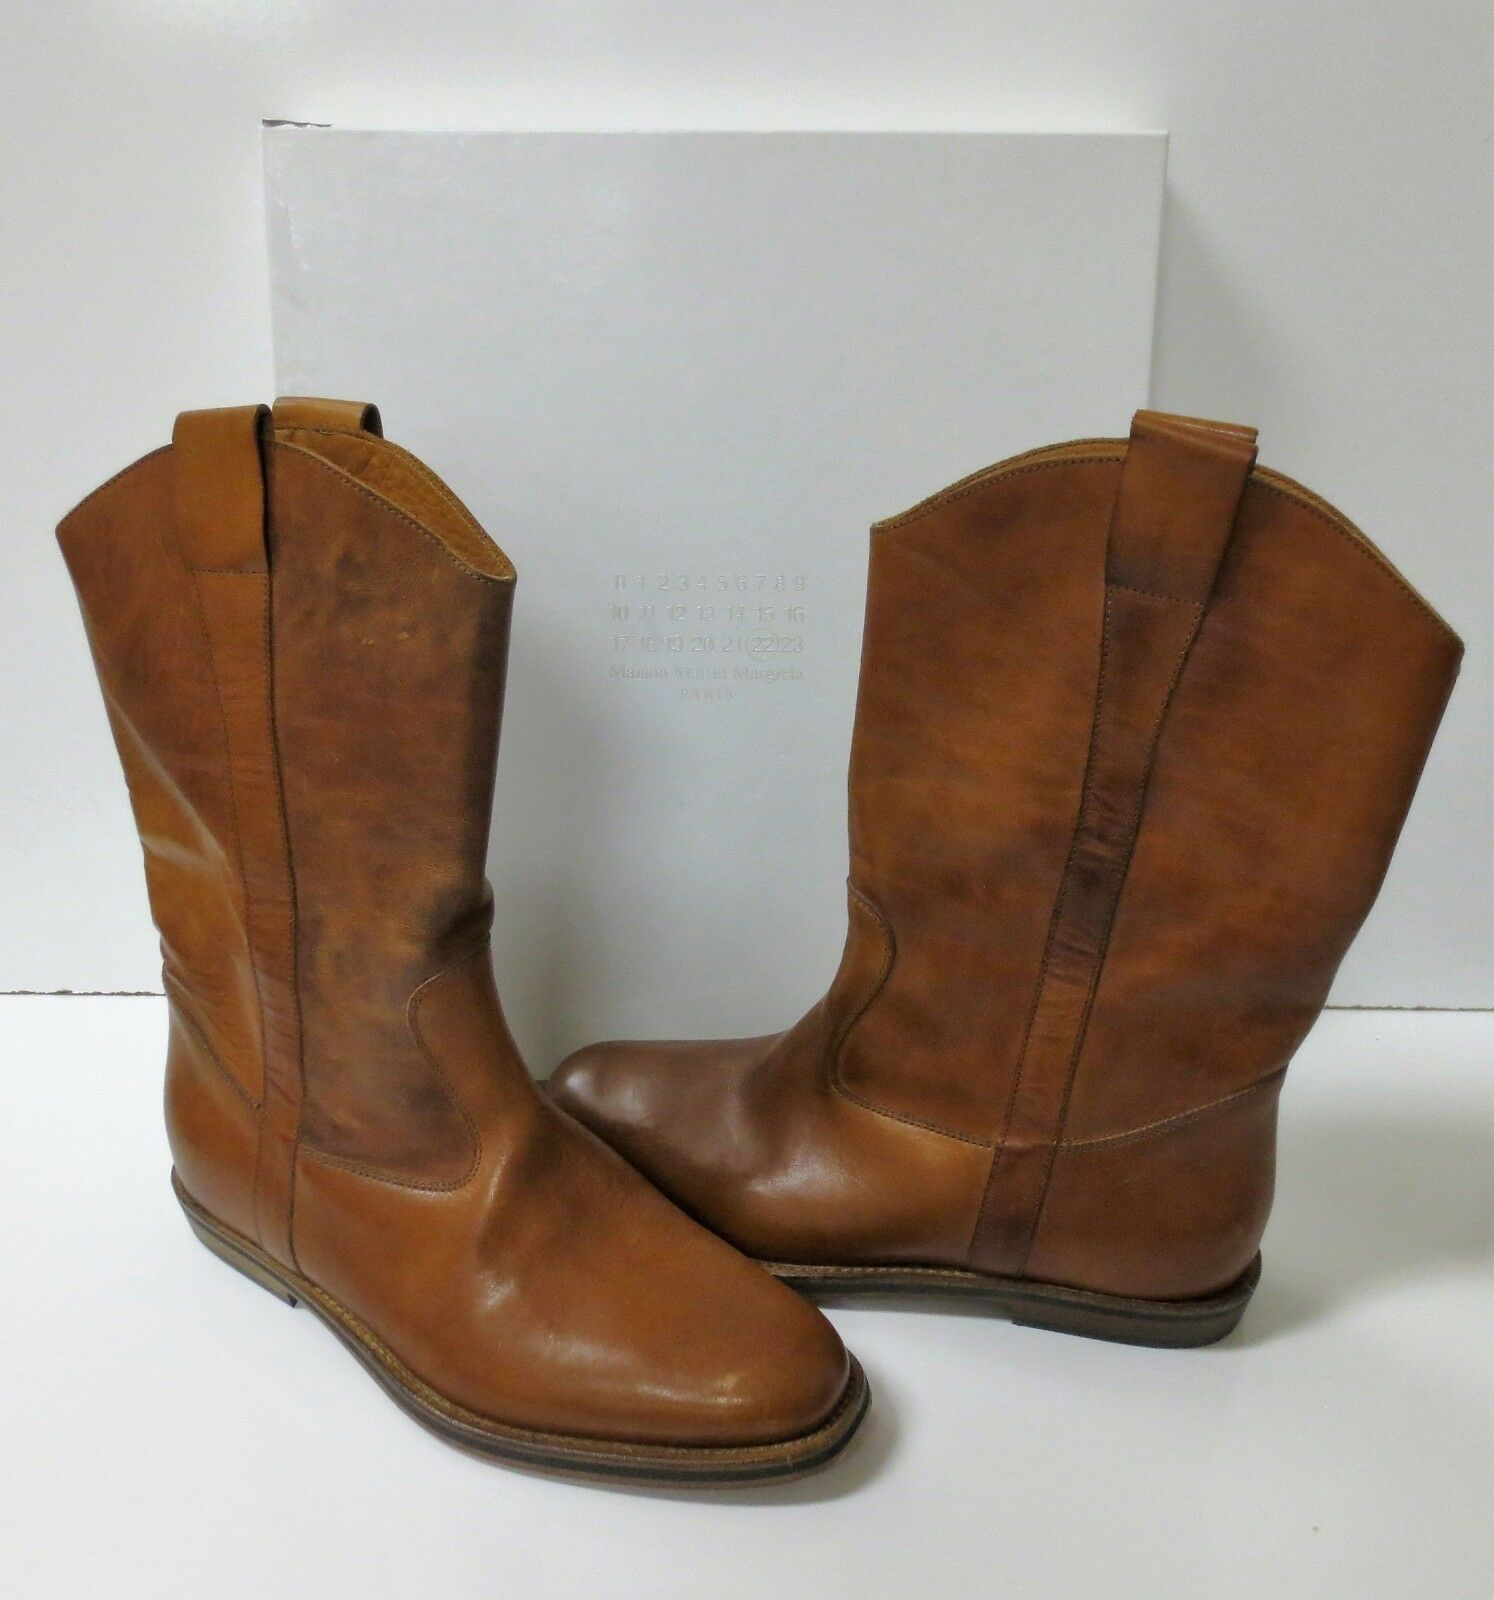 Maison Martin Margiela Distressed Brown Leather Western Boots NEW Sz 38  995